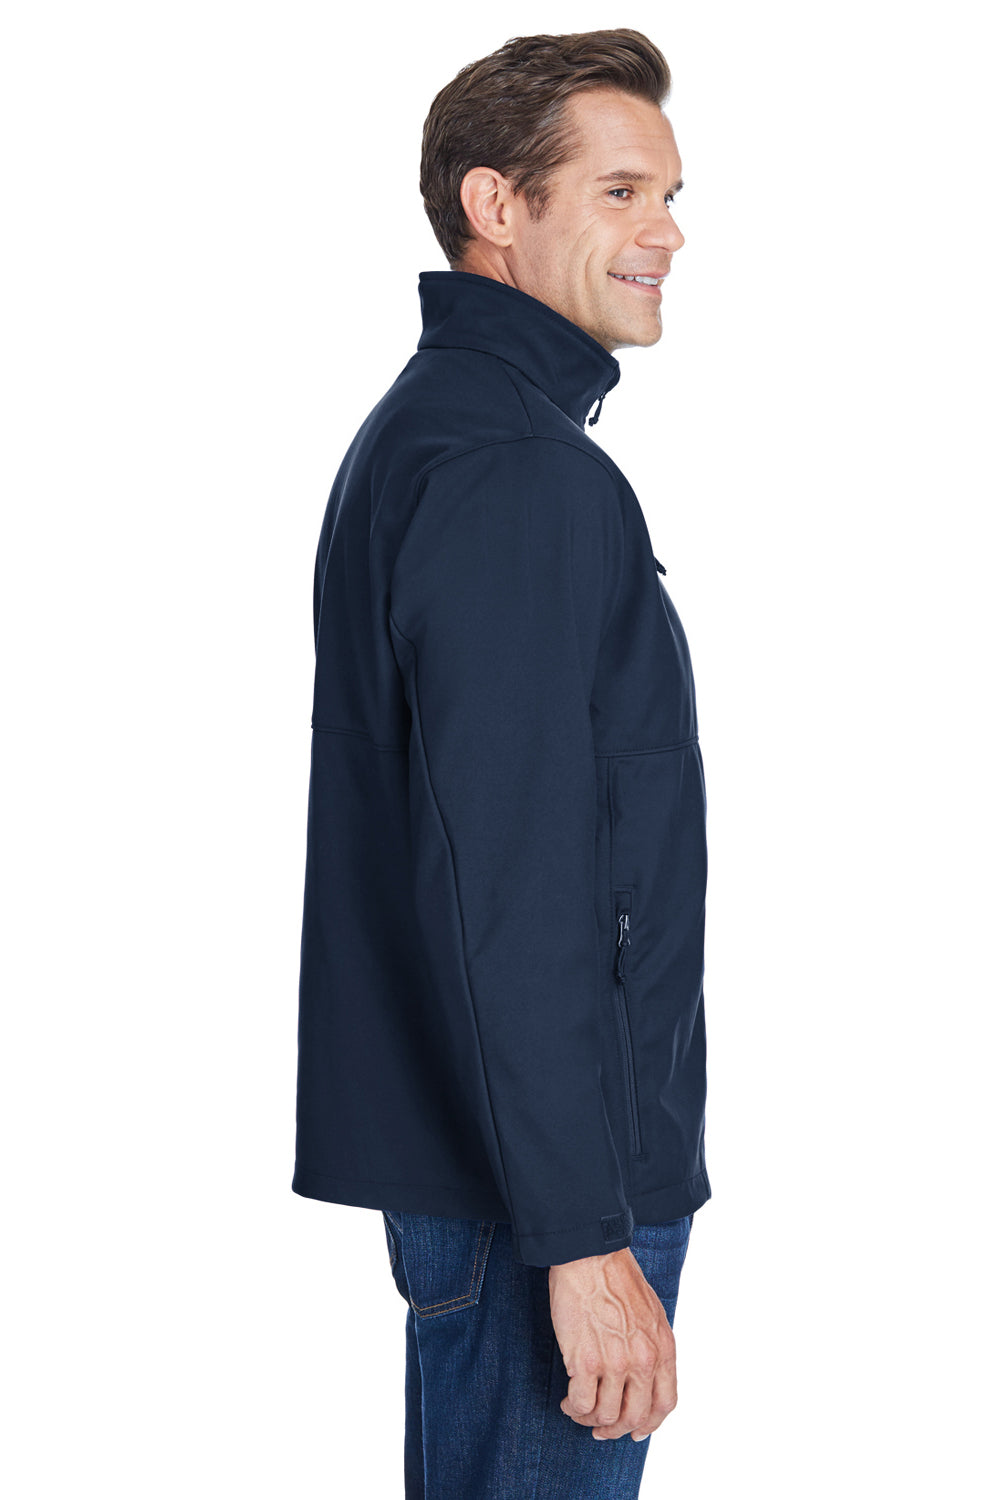 Columbia C6044 Mens Ascender Wind & Water Resistant Full Zip Jacket Navy Blue Side